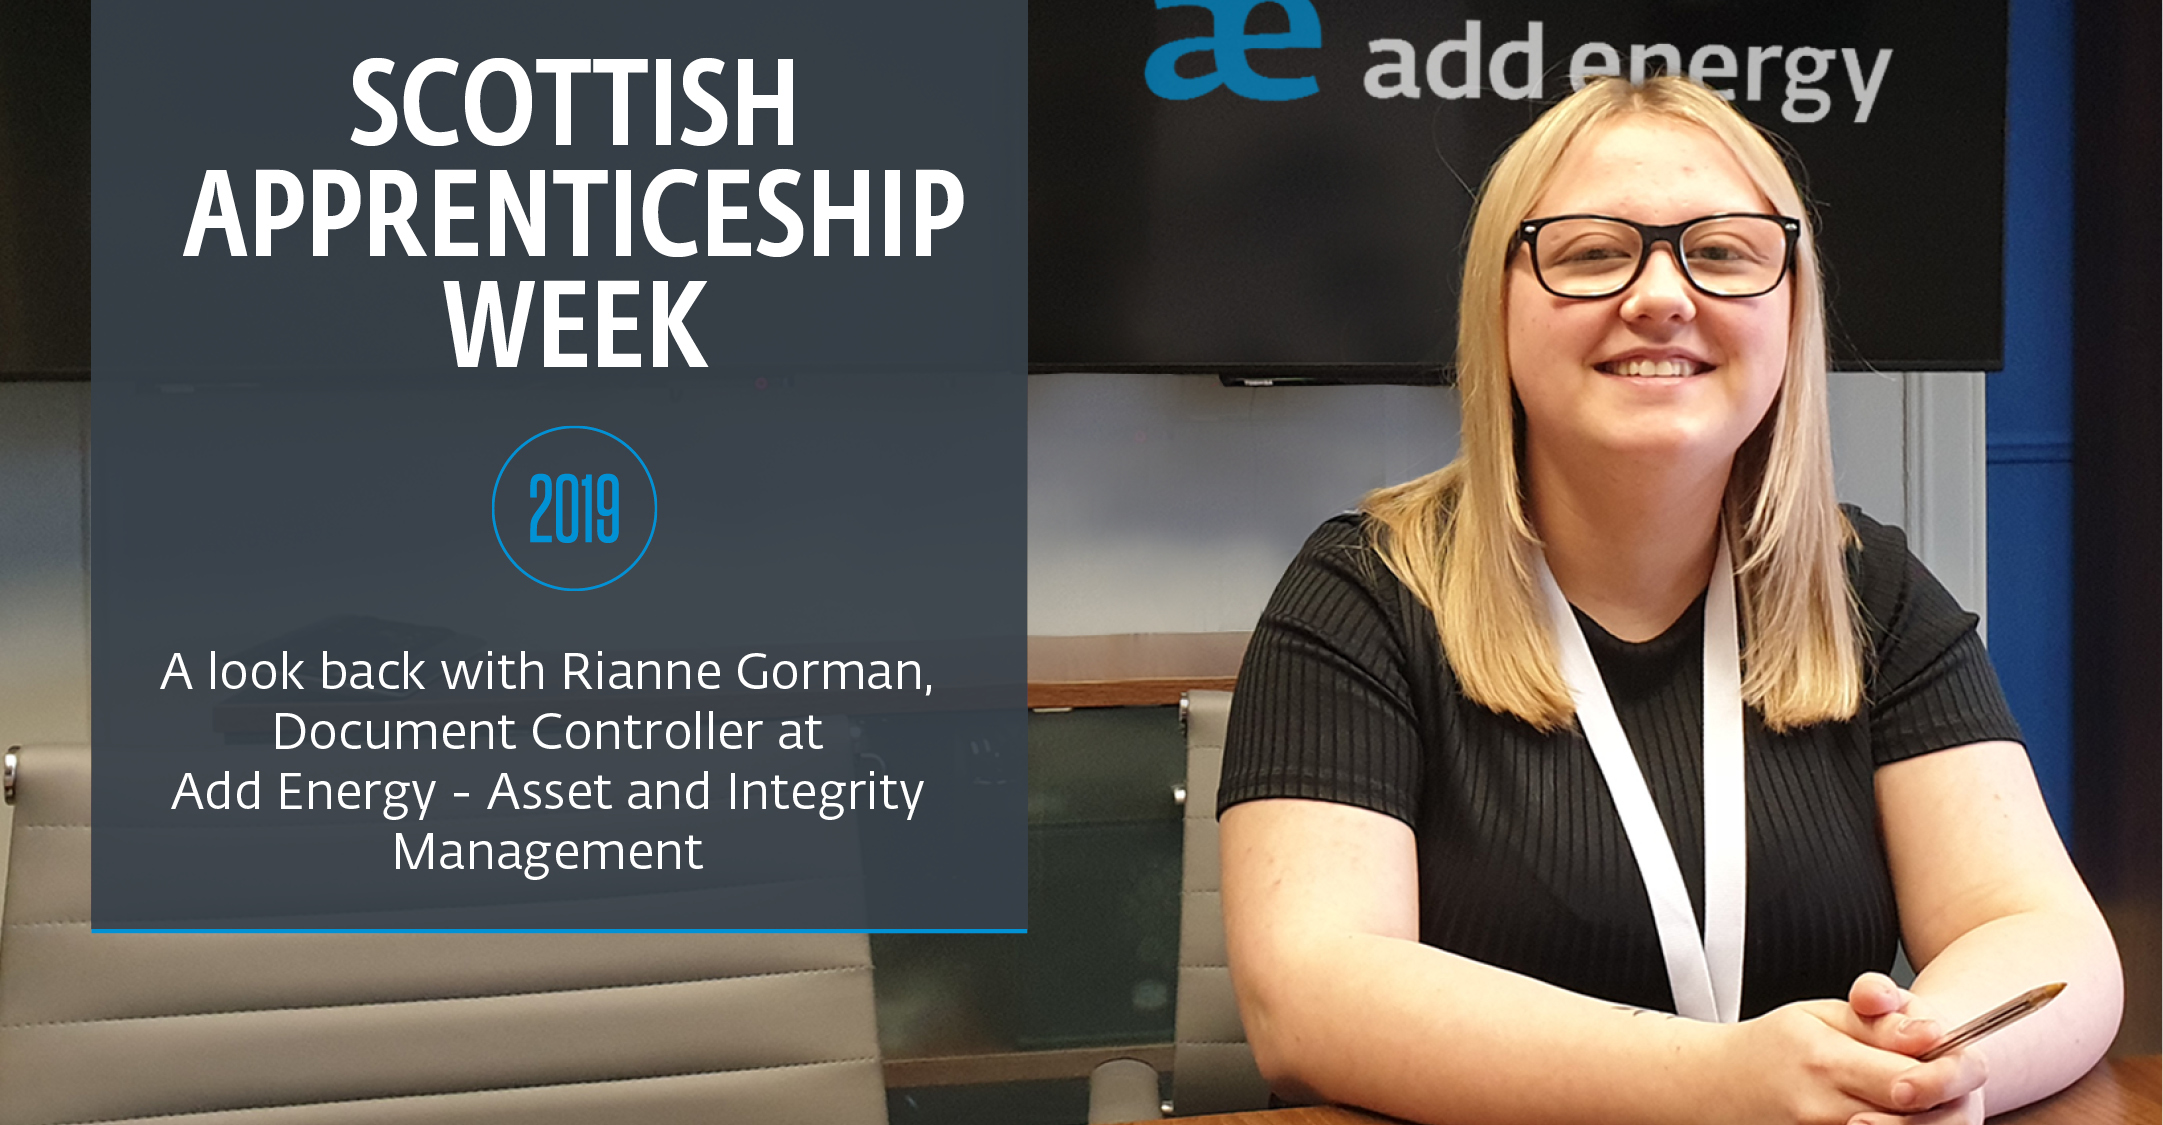 Scottish Apprenticeship Week 2019: a look back with rianne gorman